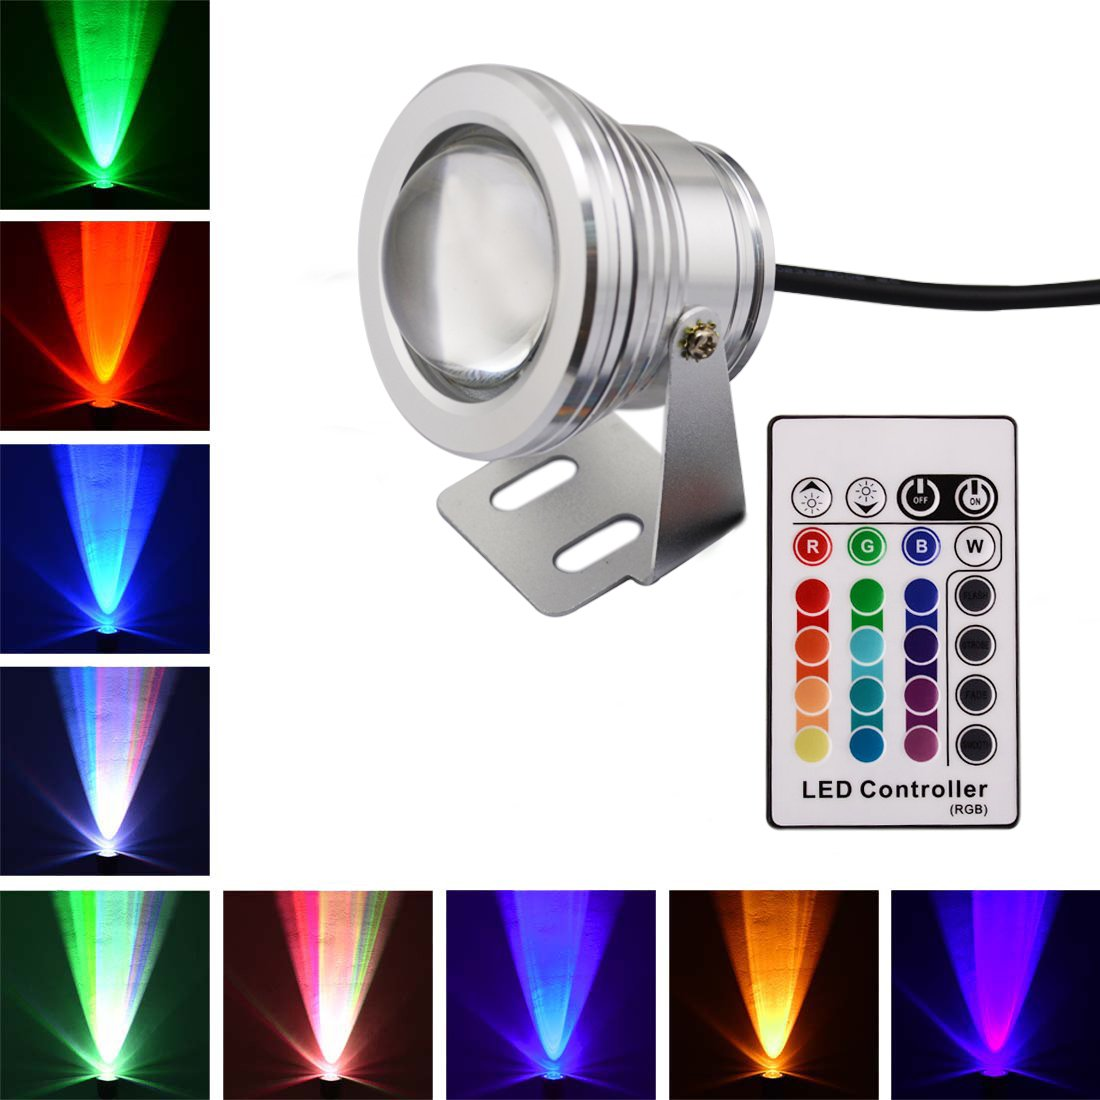 lonove® 10w rgb led underwater spot light multi color 12v 16 Rbg Wiring Multiple Lights Pond lonove® 10w rgb led underwater spot light multi color 12v 16 colors changing ir remote waterproof pool fountain pond outdoor use 150cm (59inch) cord cable Three-Way Wiring Multiple Lights